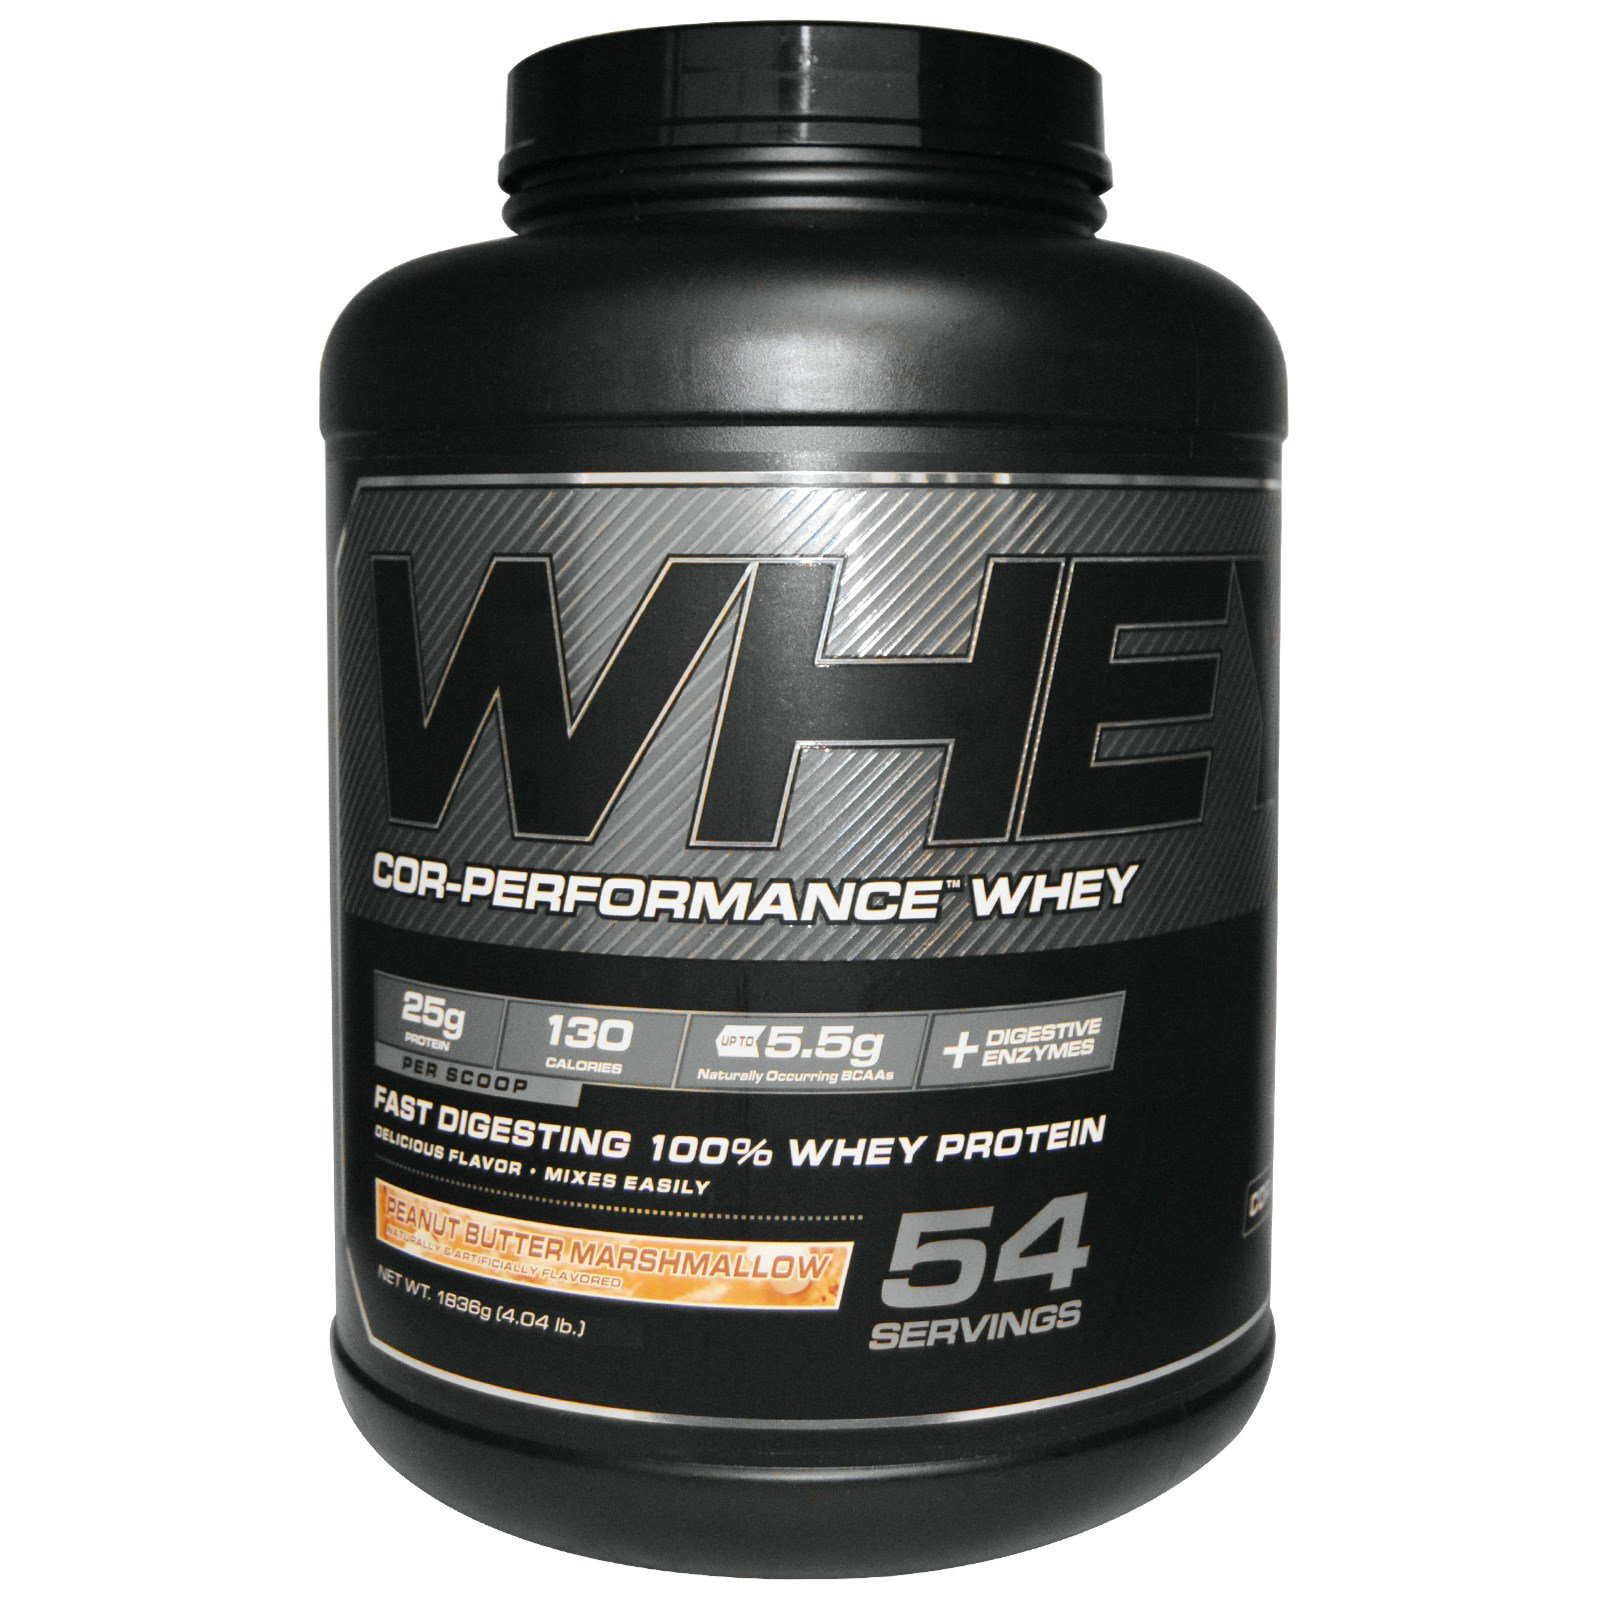 COR-Performance Whey 4lb p.but§marsh. -COR